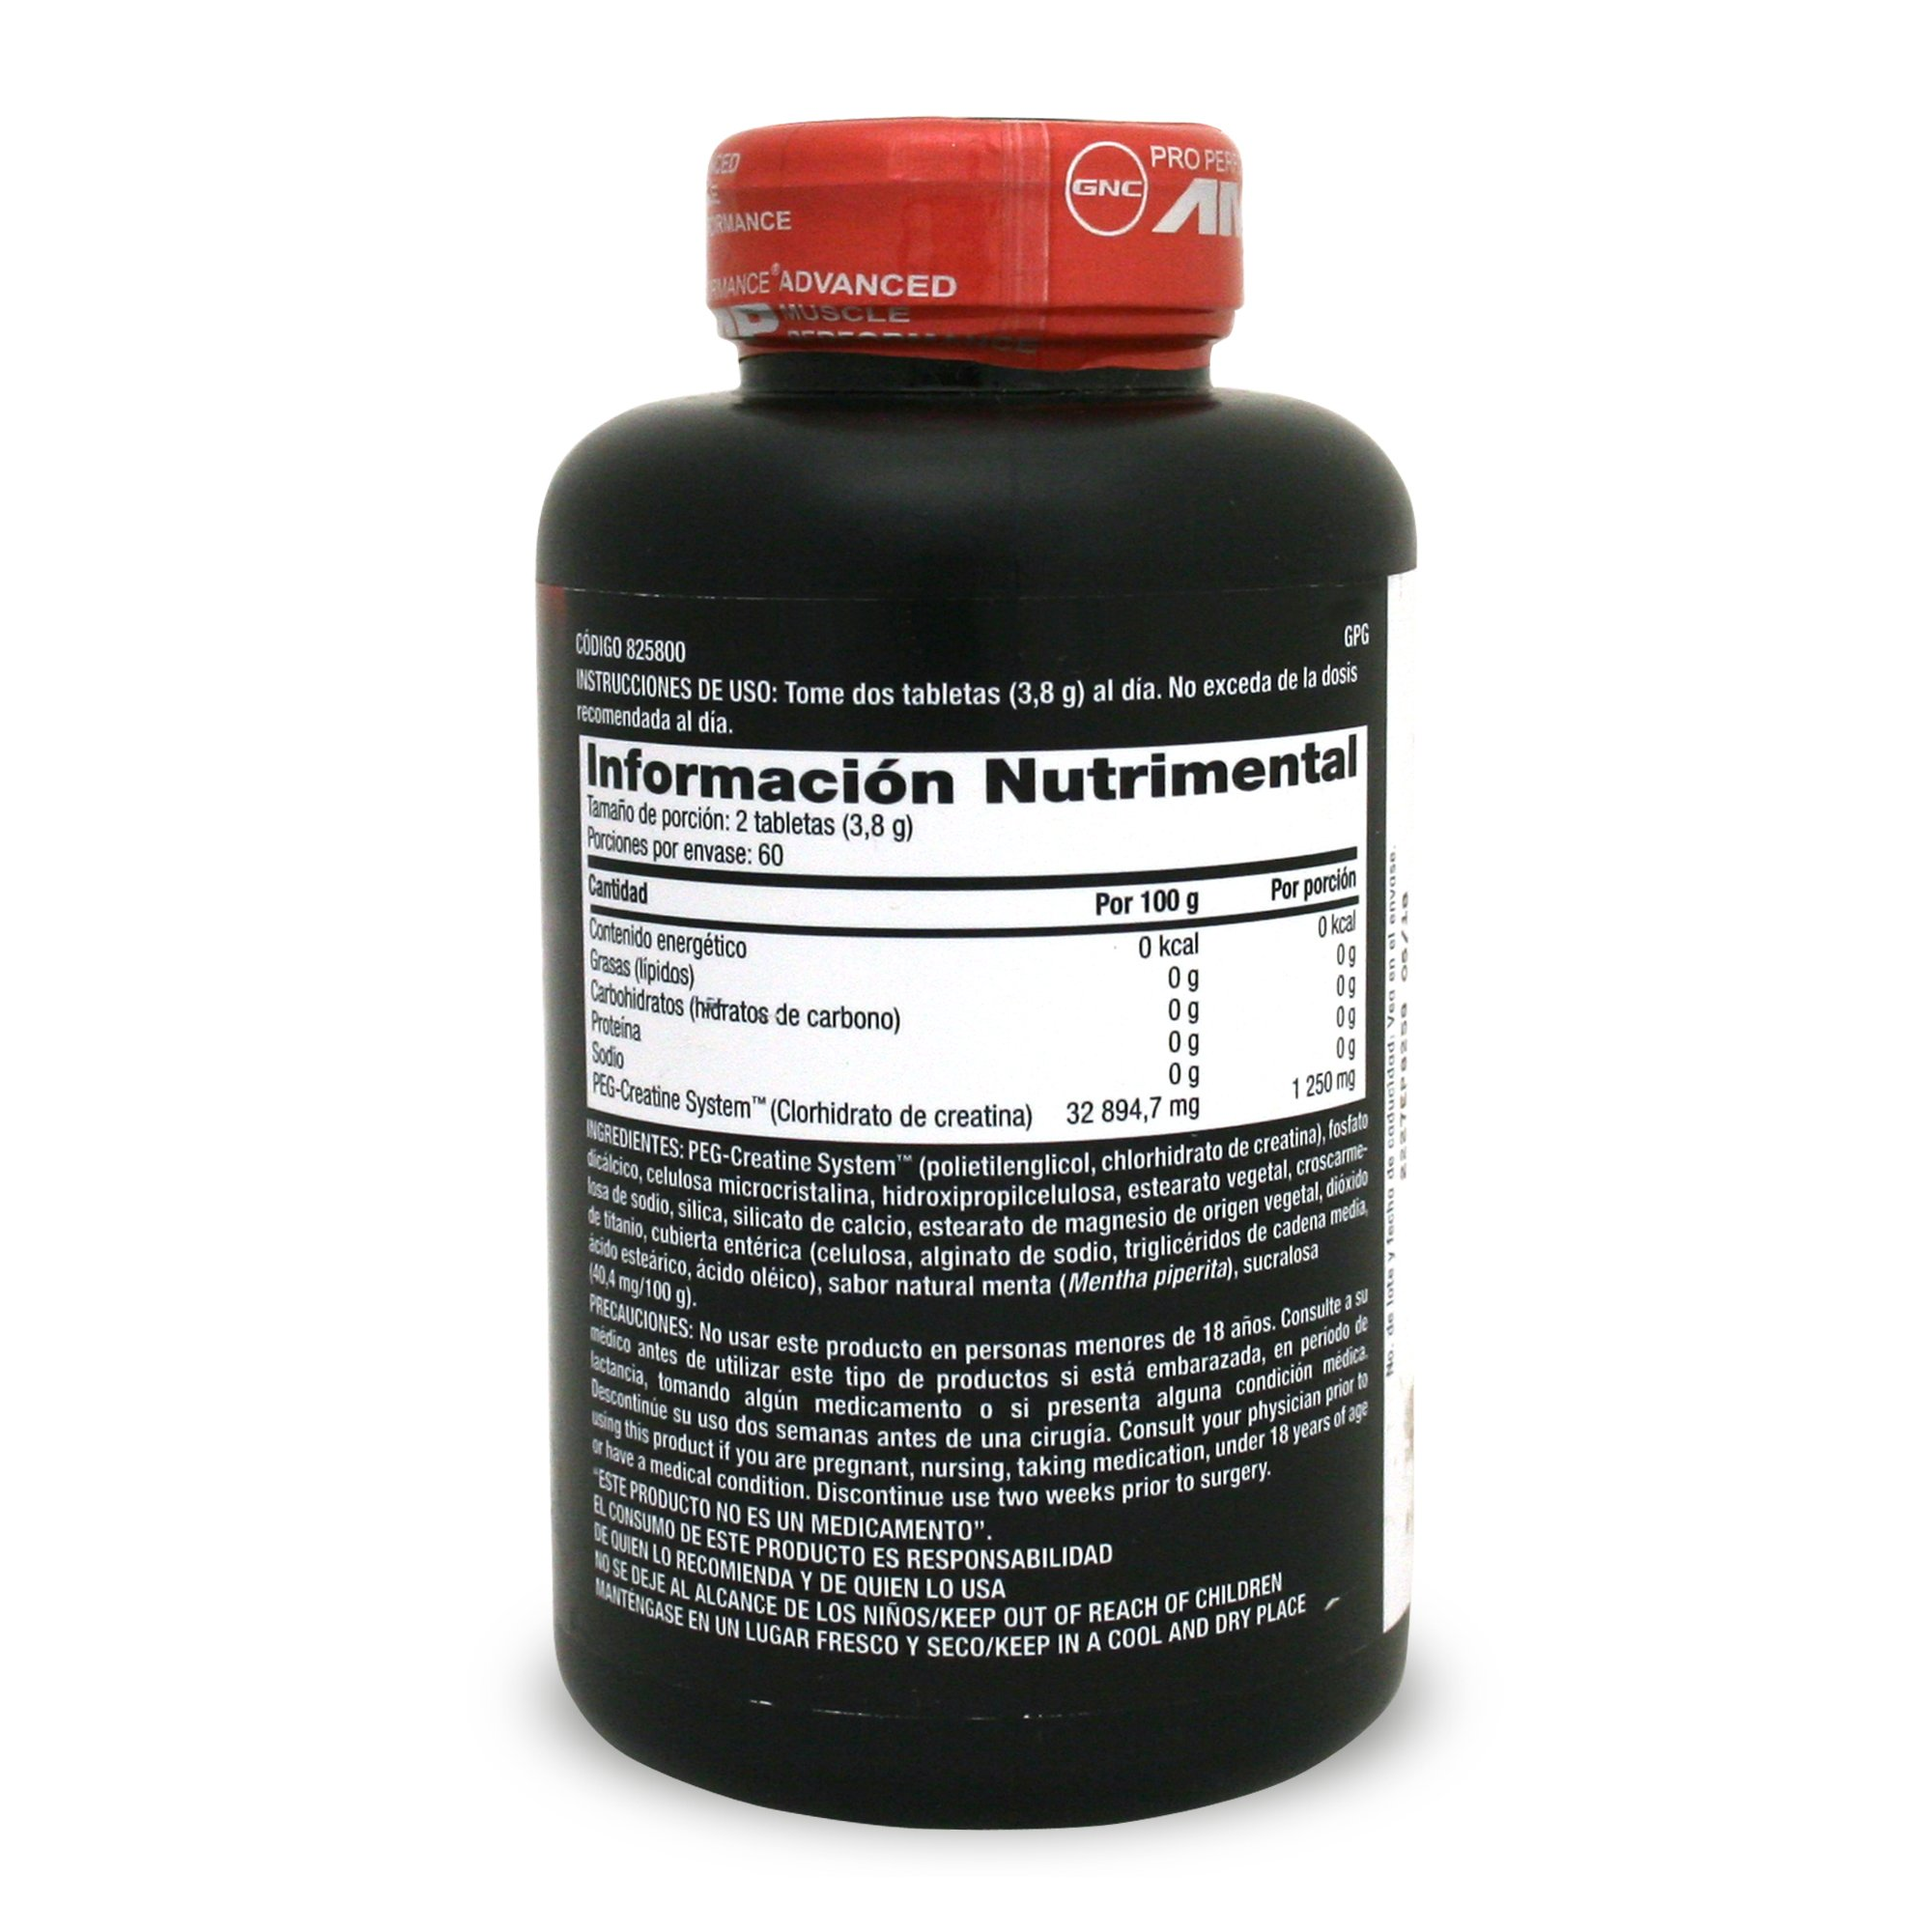 GNC AMP Amplified creatine 189 120 tablets by GNC (Image #4)